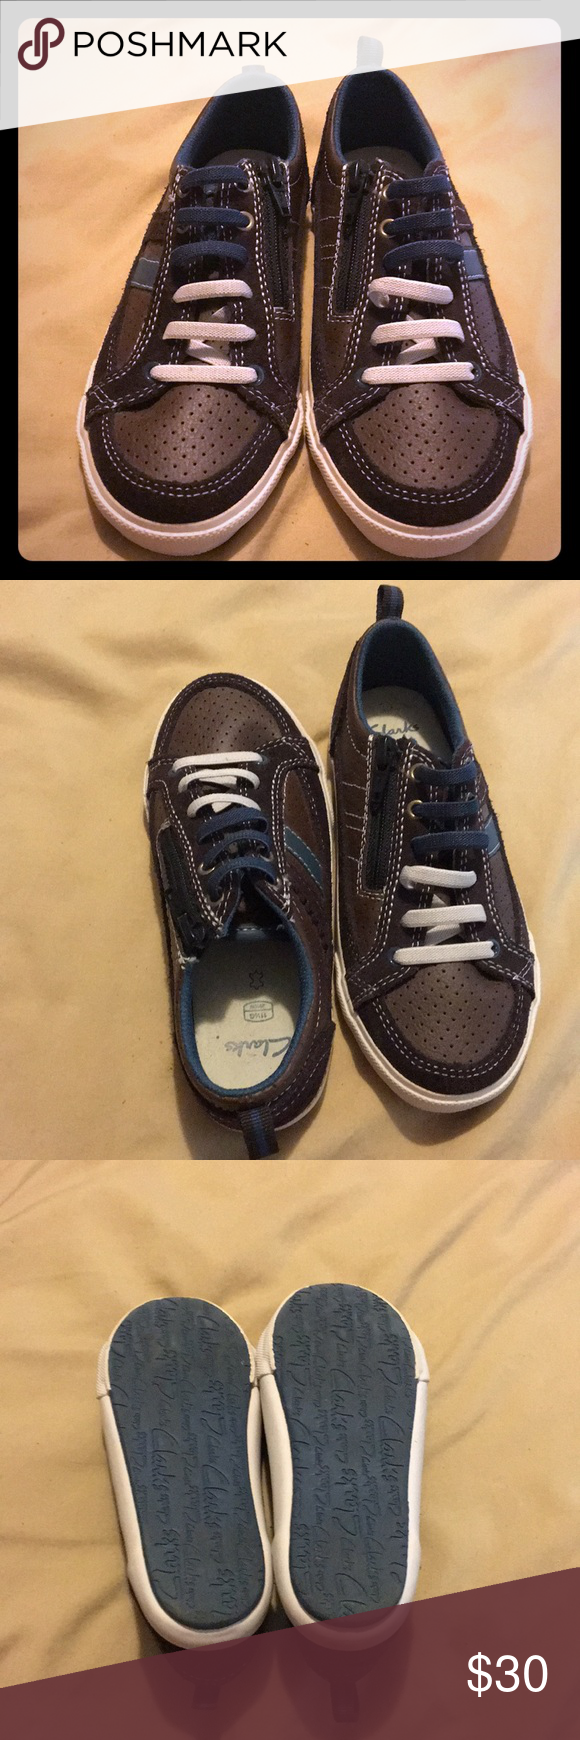 ad9887f459ebc Clarks kids shoes size 11 1/2 Leather Upper USA size 11 1/2 great condition Clarks  Shoes